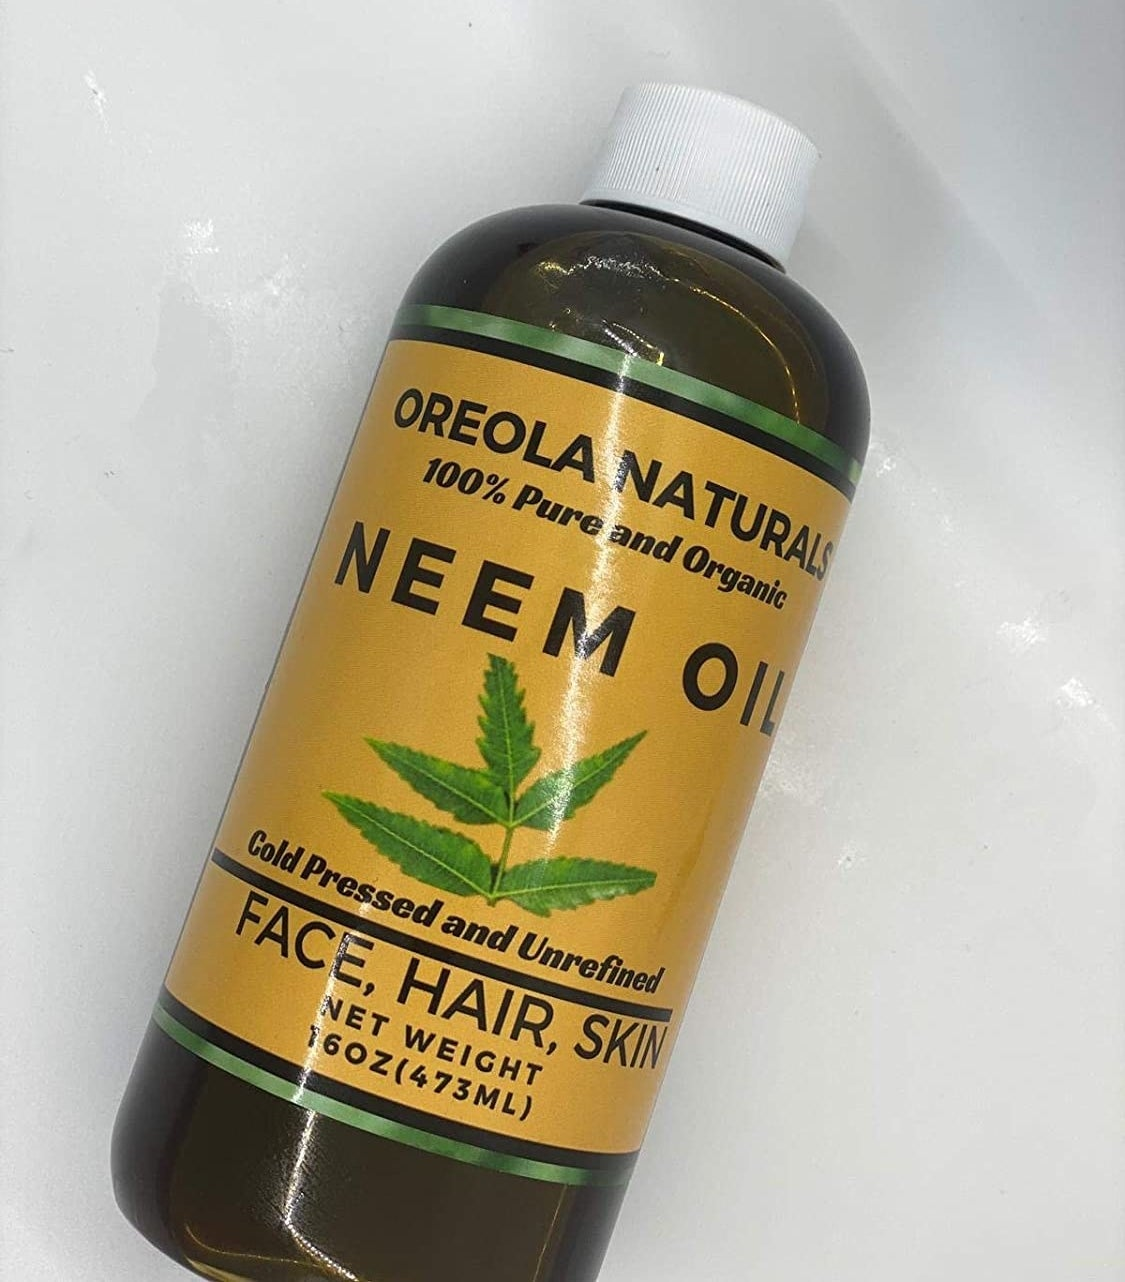 A bottle of organic cold pressed and unrefined neem oil